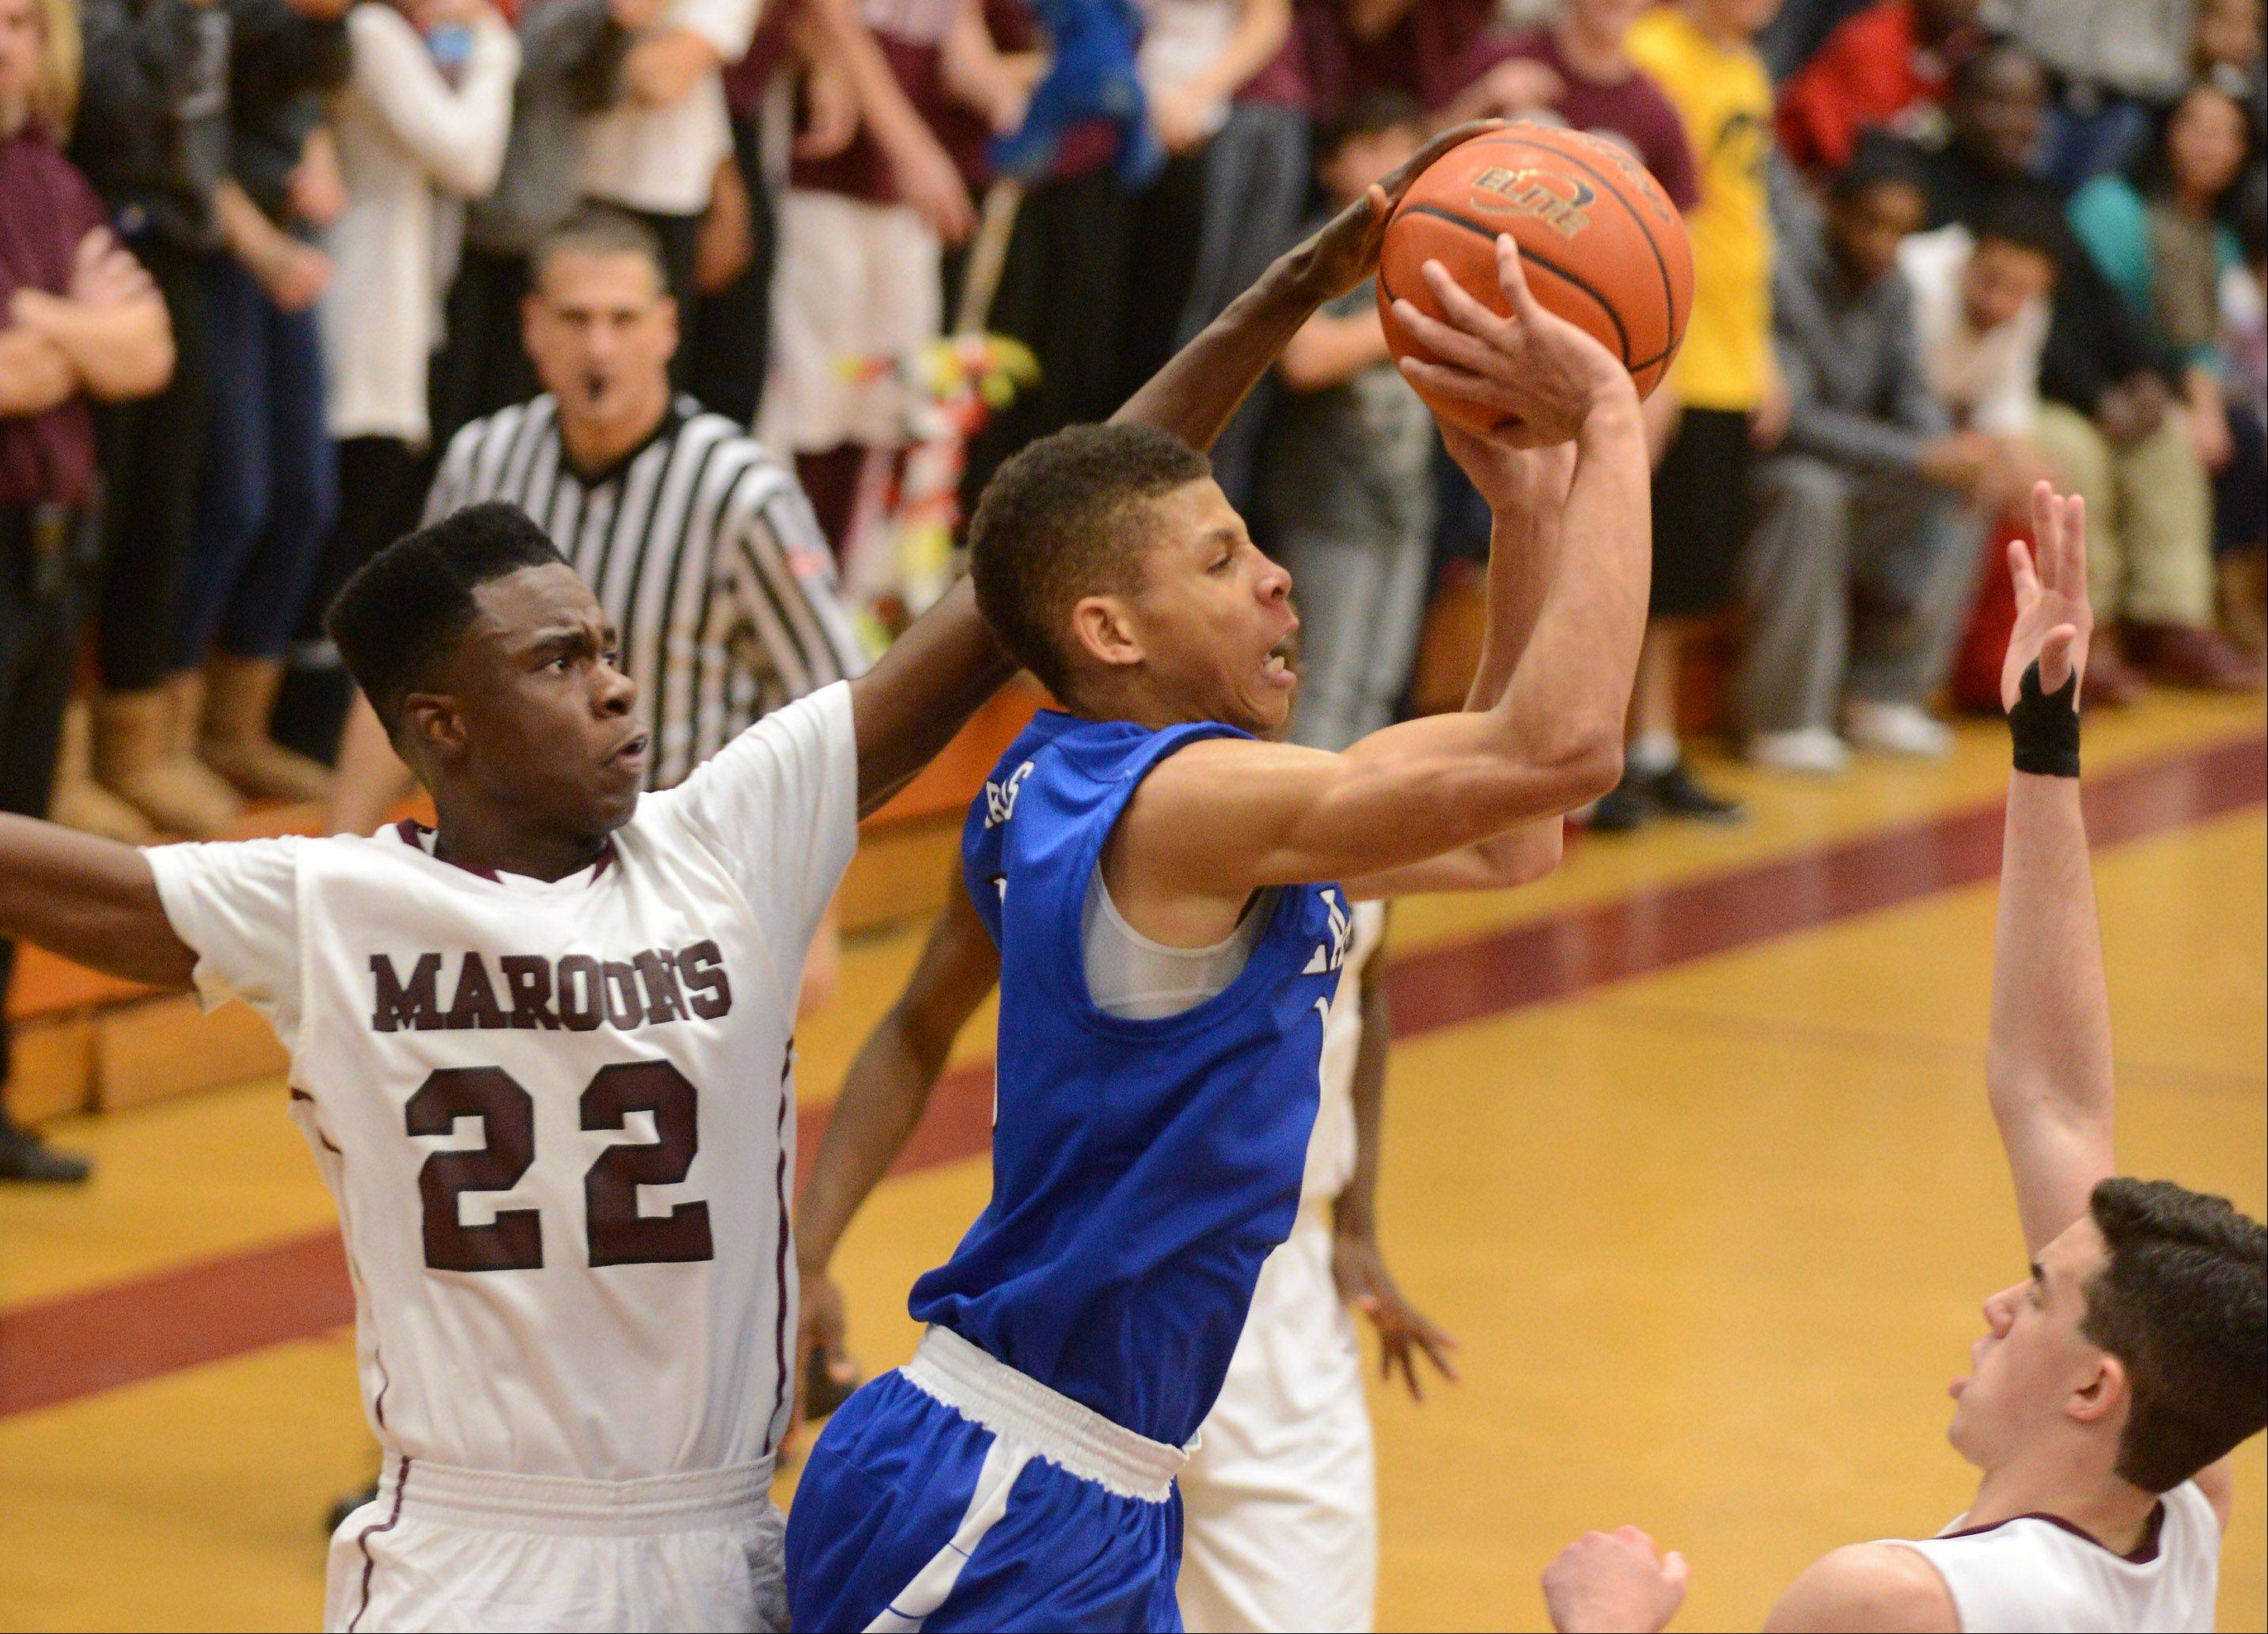 Larkin's Kendale McCullum puts up a shot between a pair of Elgin defenders, including Desmond Sanders.